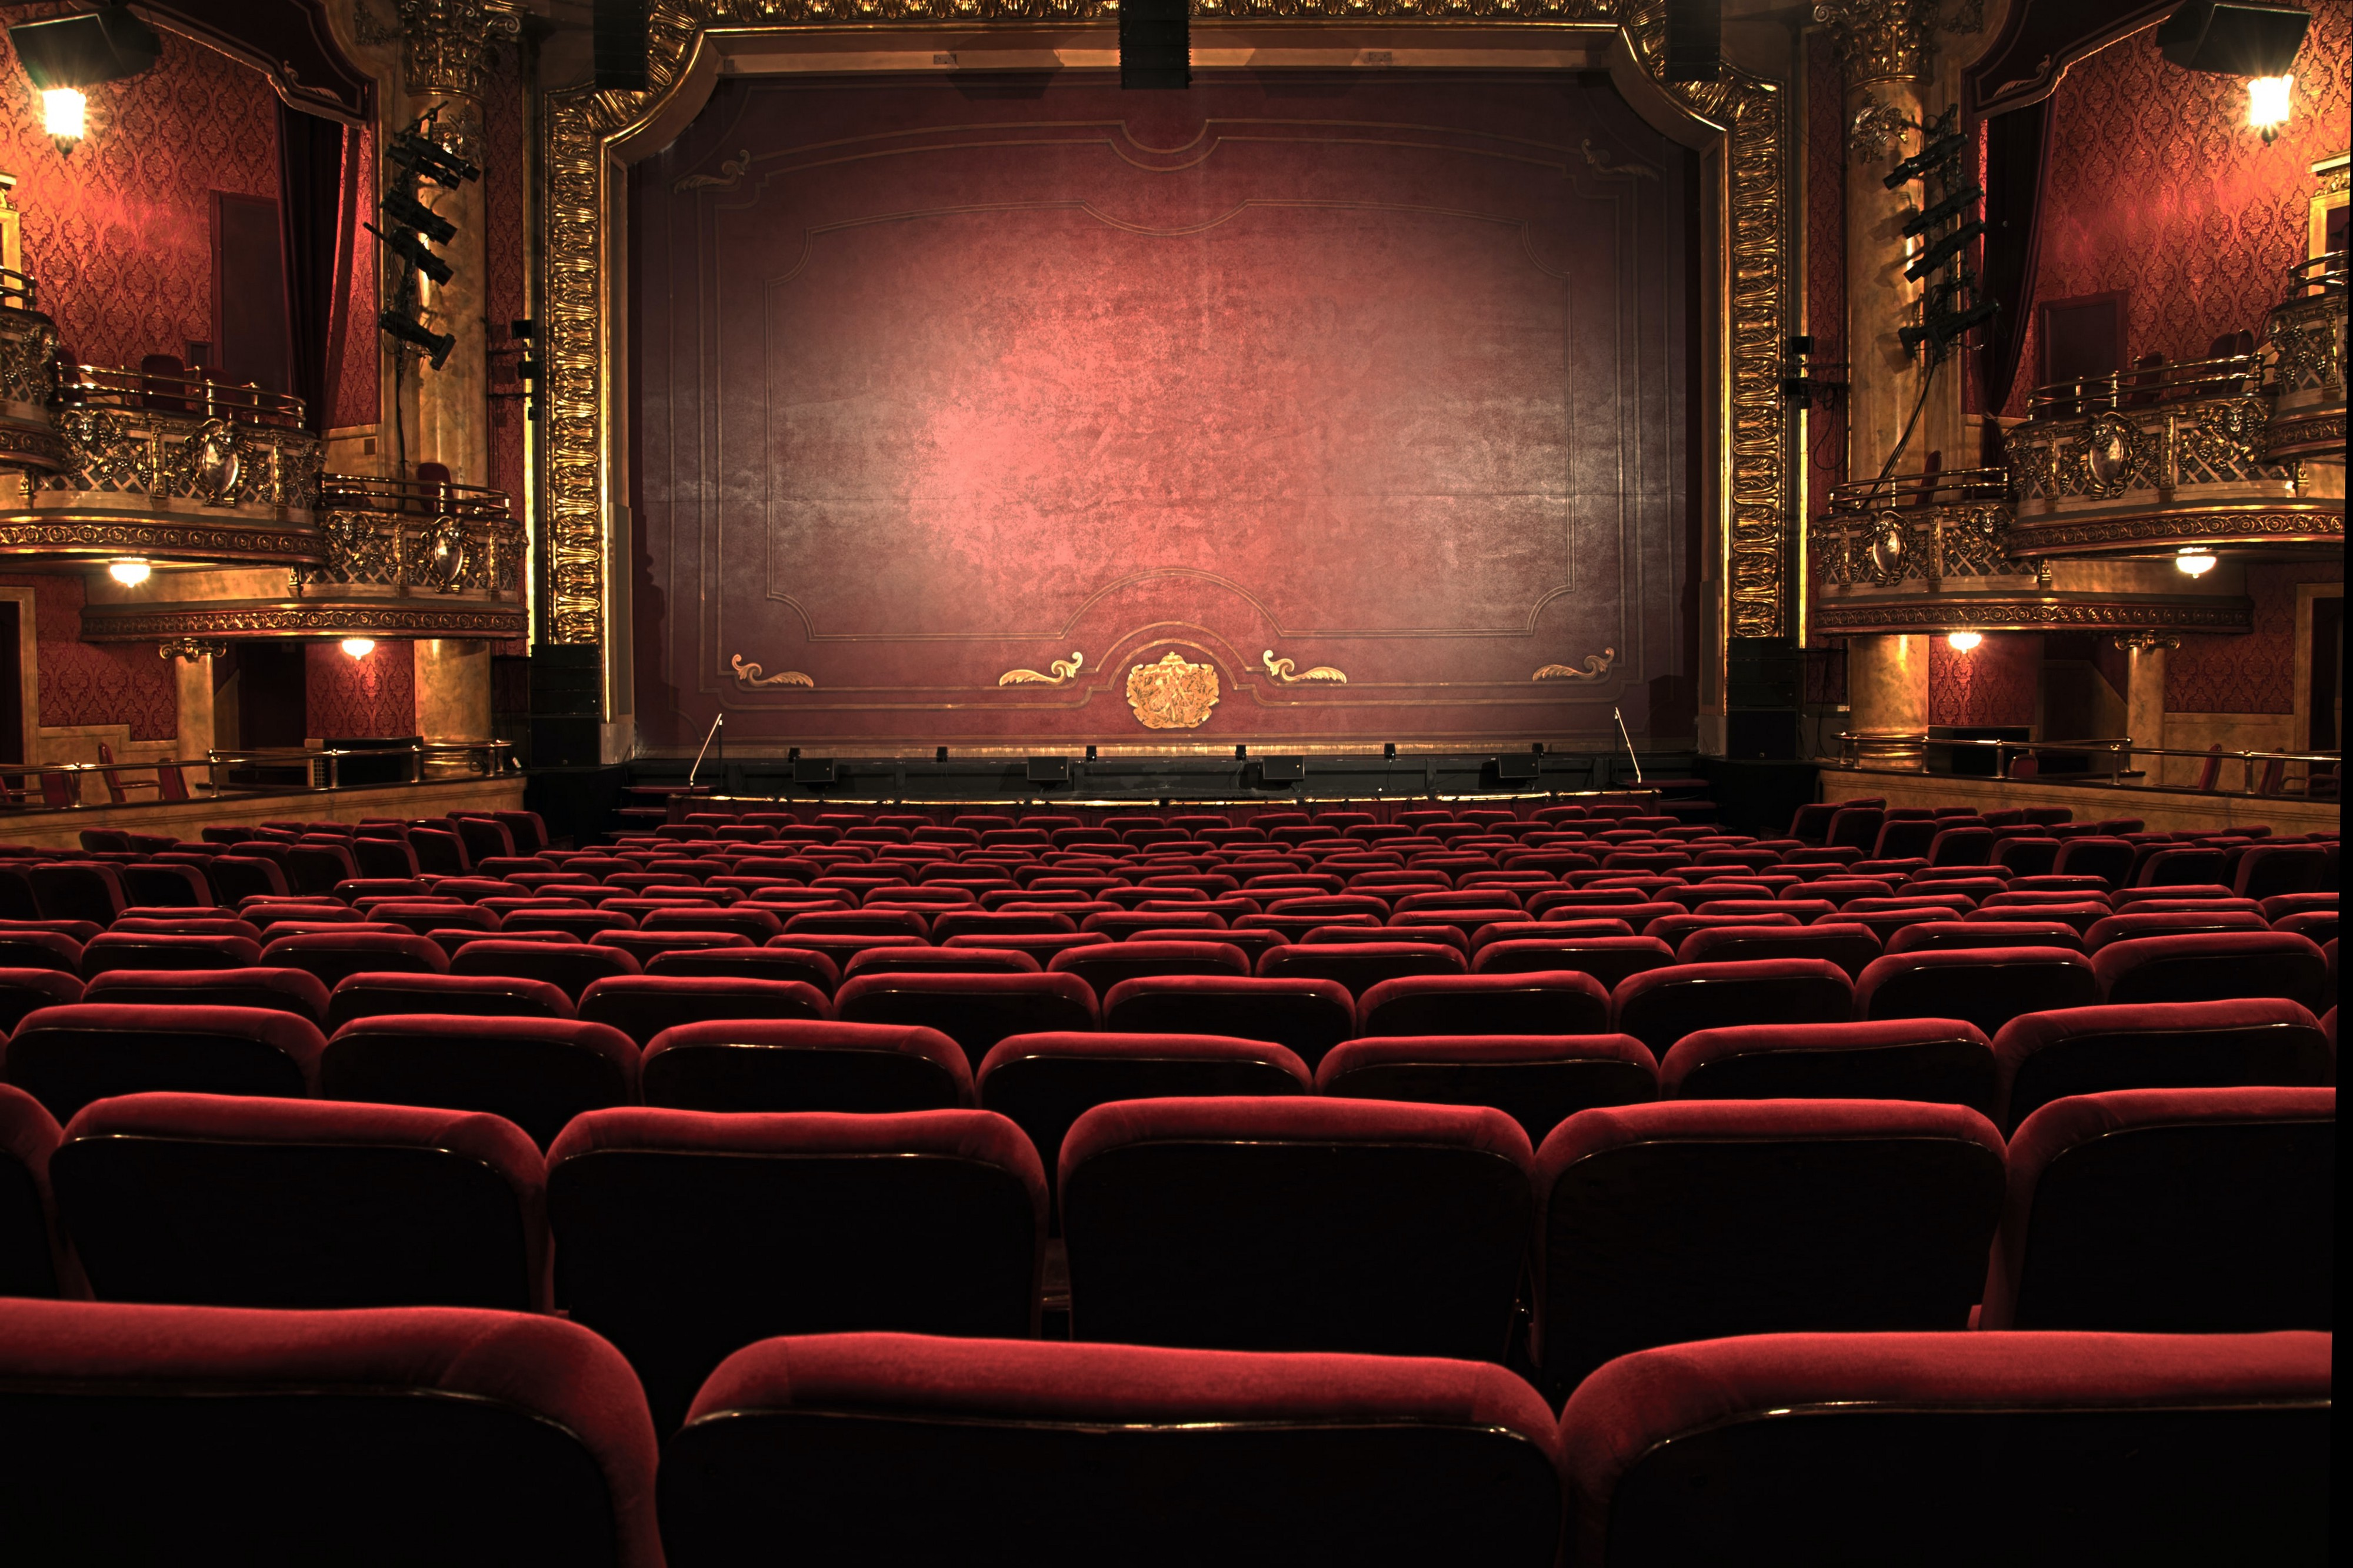 A dark red theatre with a big golden stage